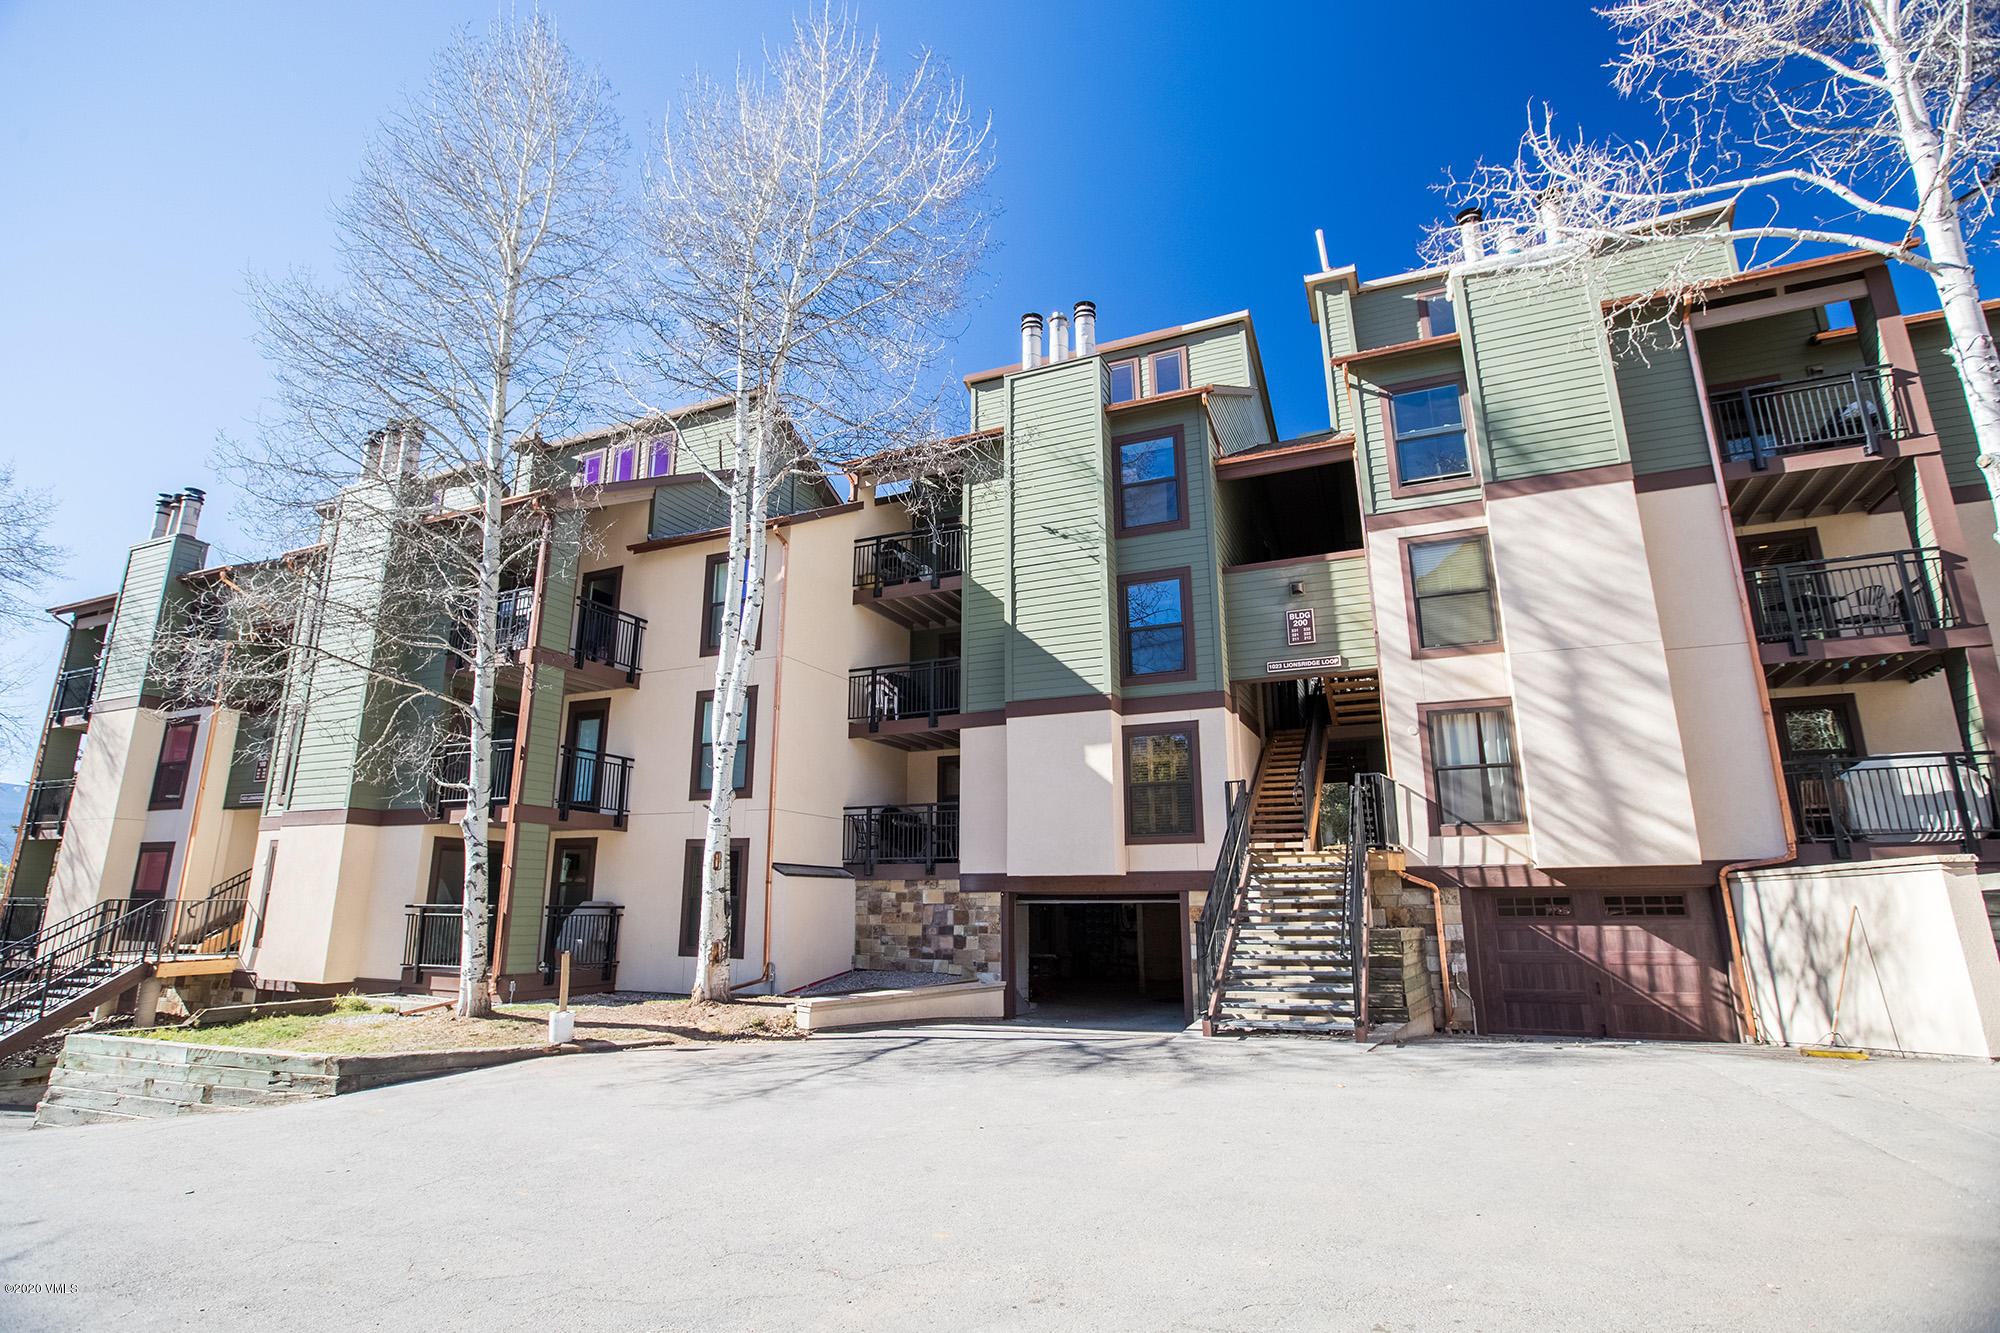 FULLY FURNISHED 2 BEDROOM, 2 BATH,  1ST FLOOR CONDO STEPS TO THE TOWN OF VAIL BUS STOP AND OUTDOOR HEATED POOL & 2 HOT TUBS.   GREAT RENTAL INCOME HISTORY.  EXTERIOR BUILDING RENOVATION WAS COMPLETED IN 2017.   ON-SITE PROPERTY MANAGER.   $692.78/MONTH CONDO FEES INCLUDE HEAT, CABLE TV, WIFI & RESERVES FOR POOL DECK REPLACEMENT IN 2022.